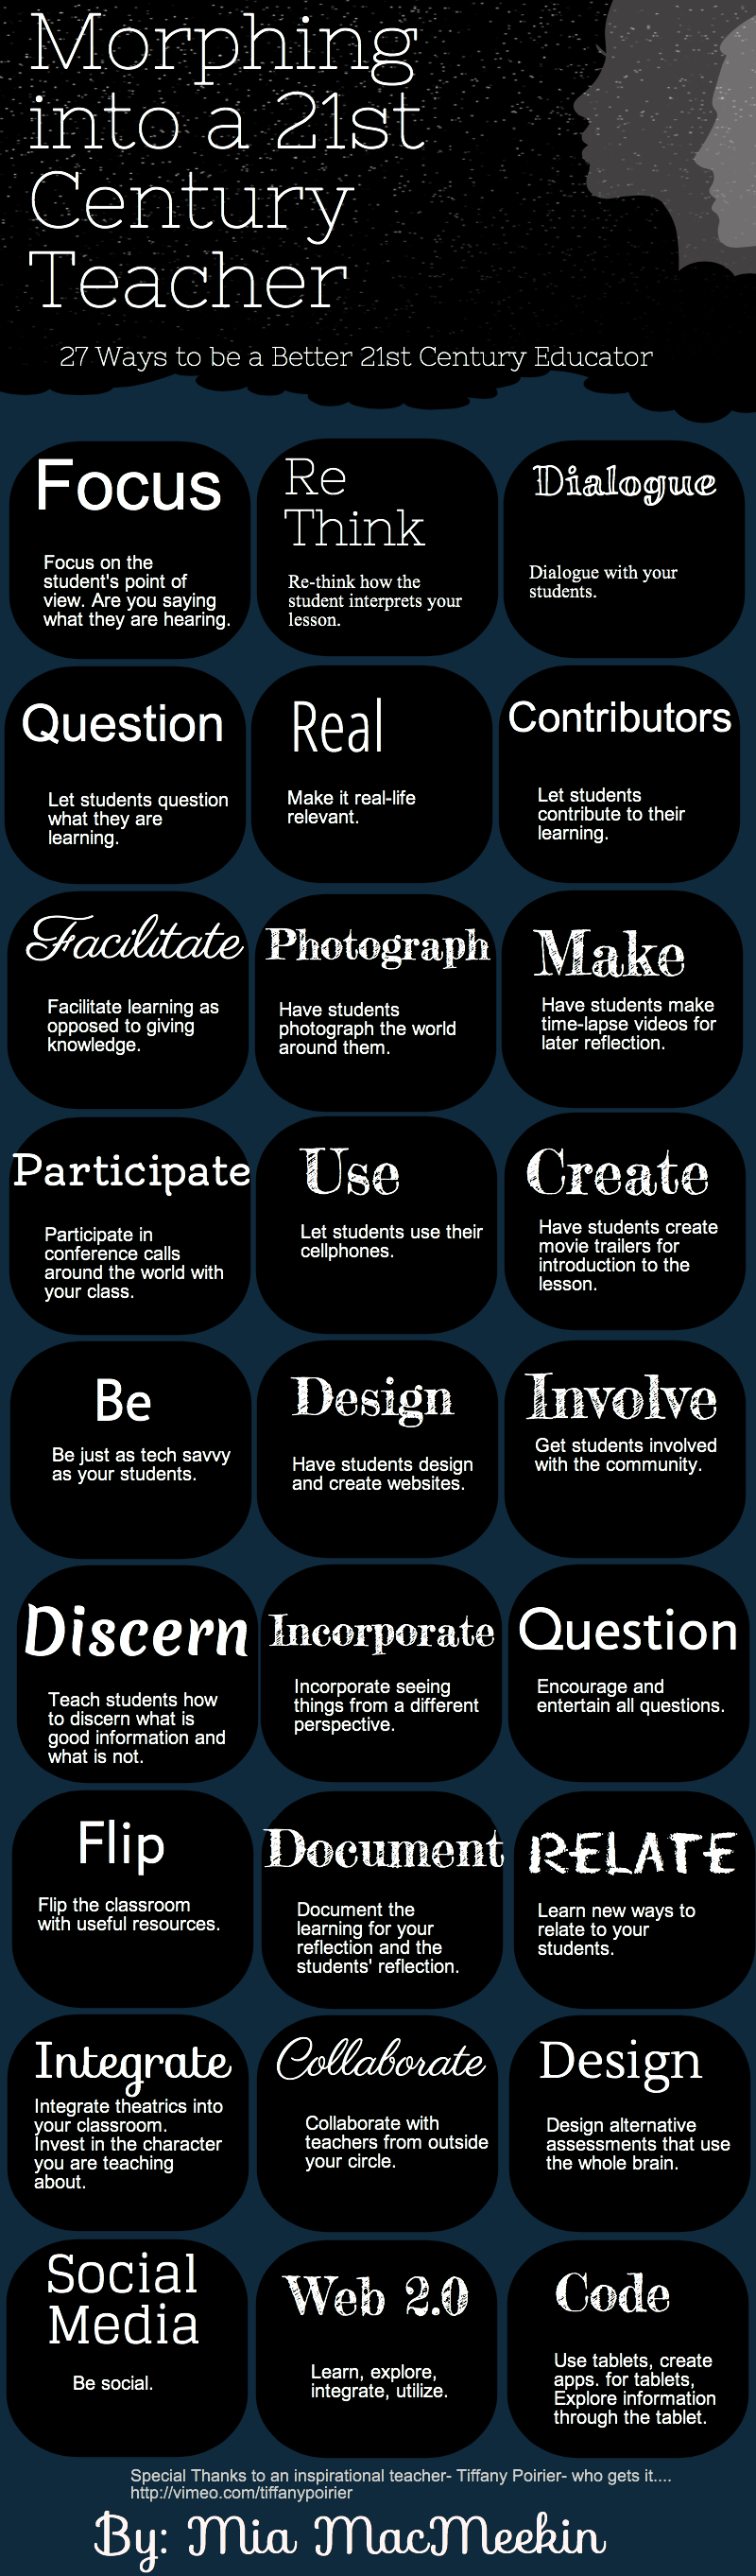 Infographic briefly explaining 27 Ways to Be a Better 21st Century Educator